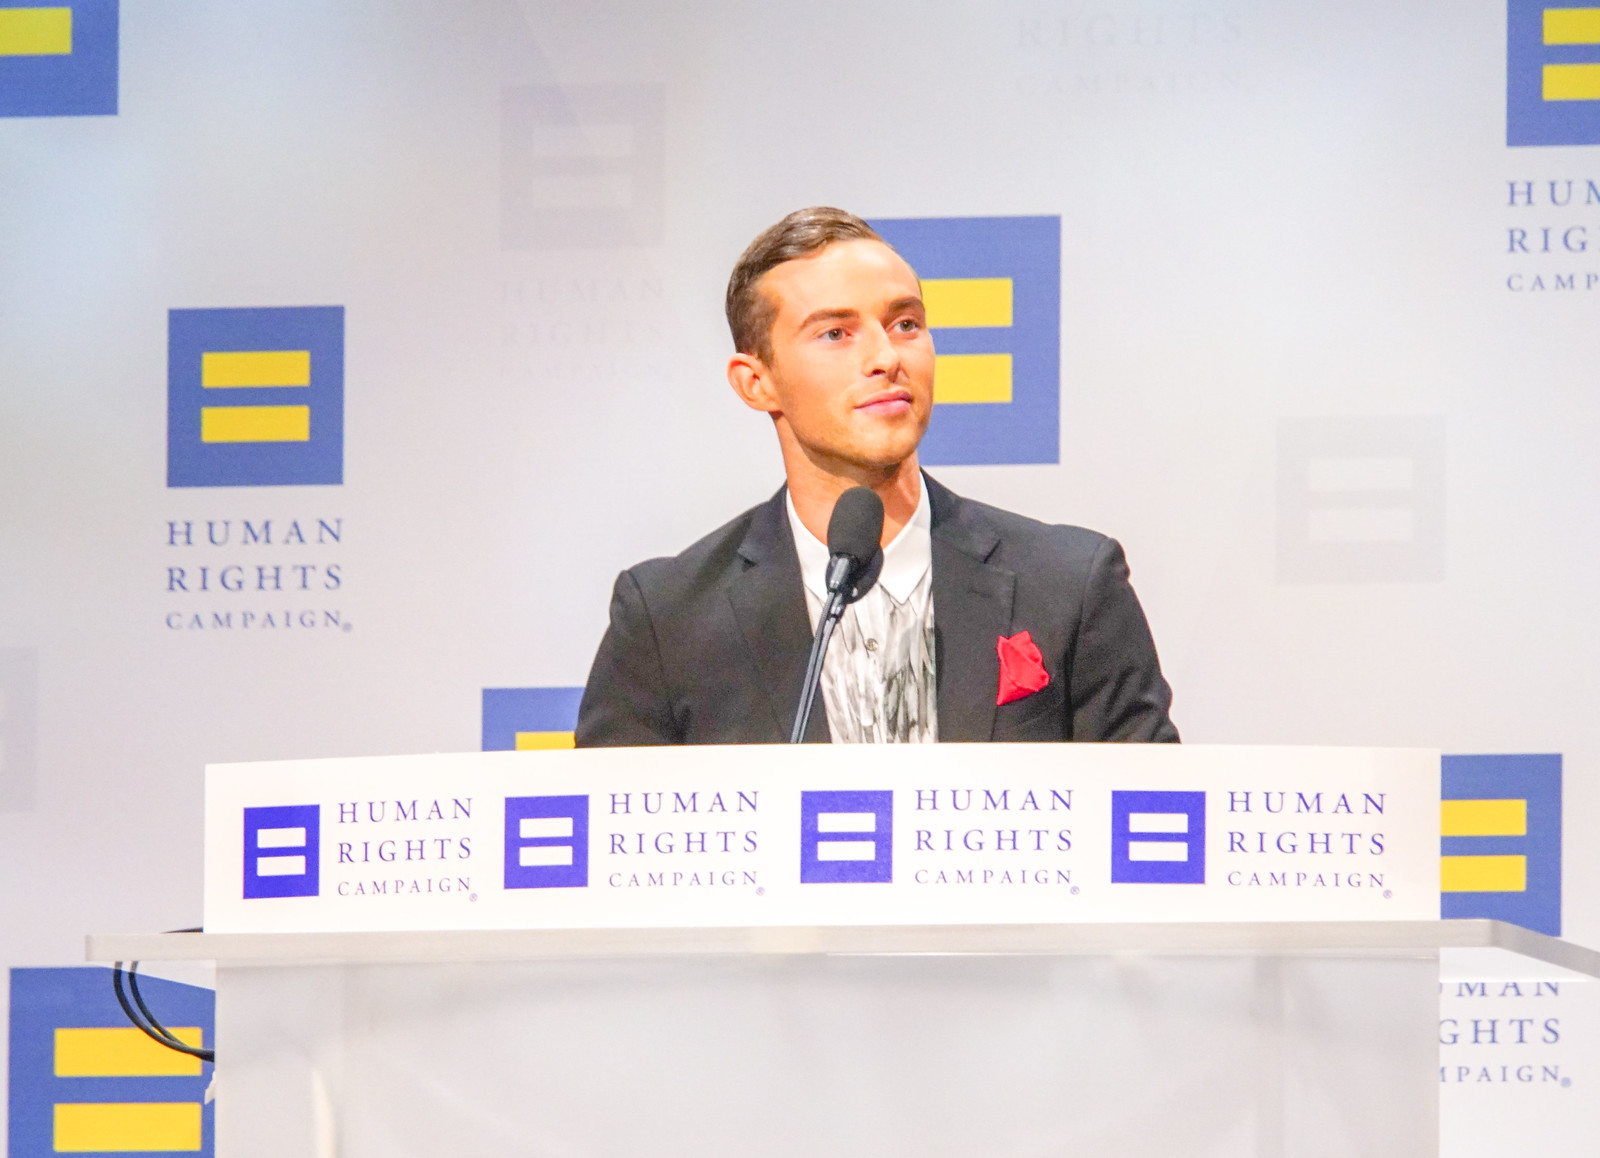 2018.09.15 Human Rights Campaign National Dinner, Washington, DC USA 06186